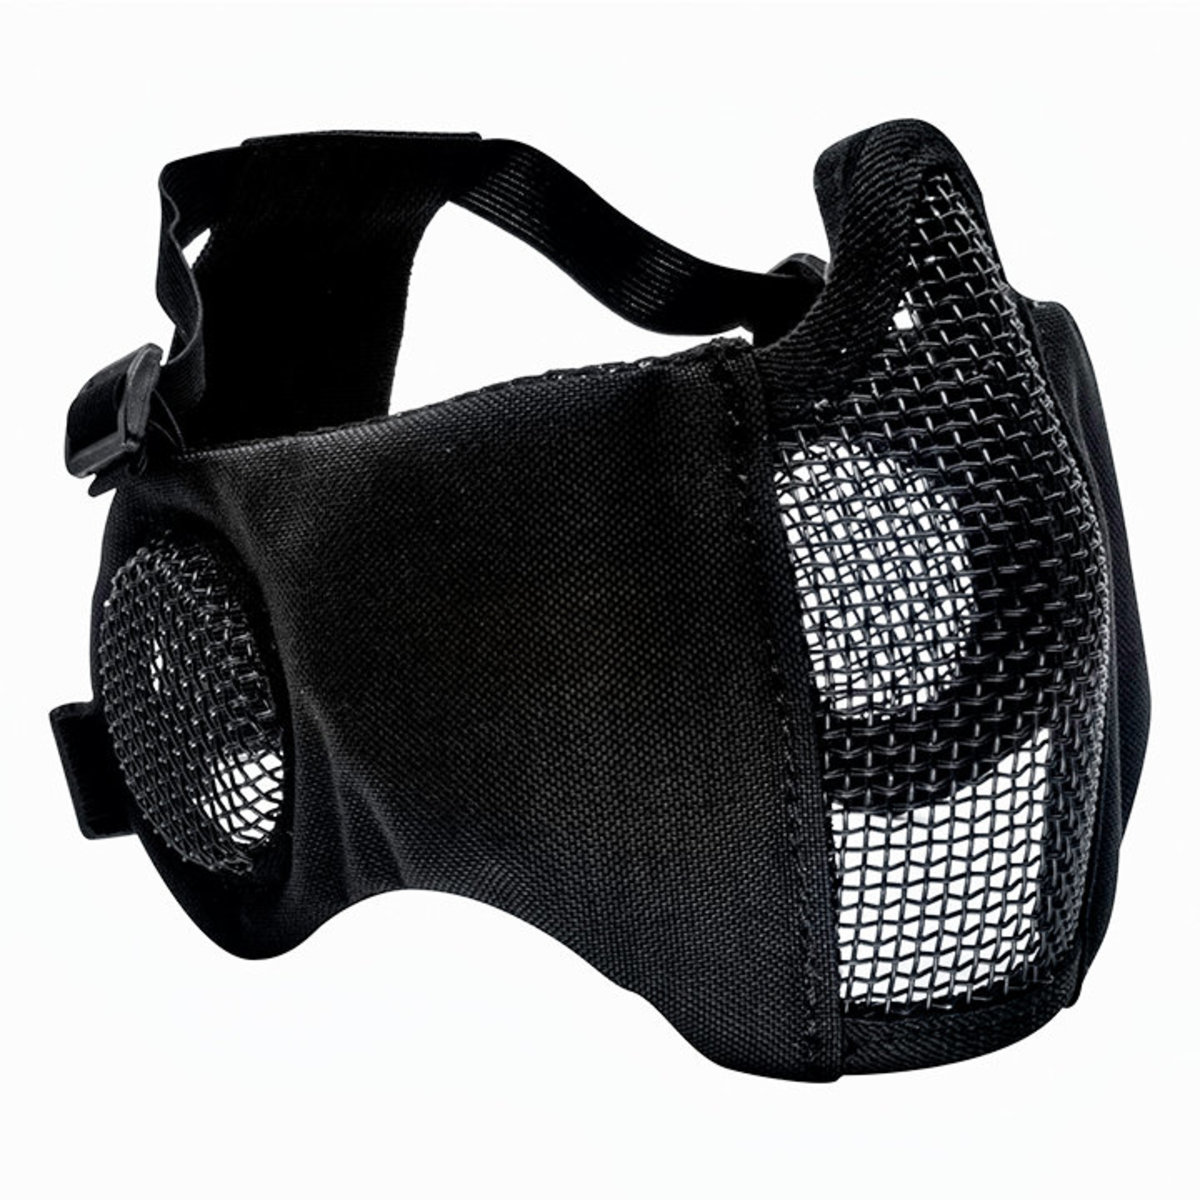 View larger image of Valken Zulu Airsoft Mesh Mask